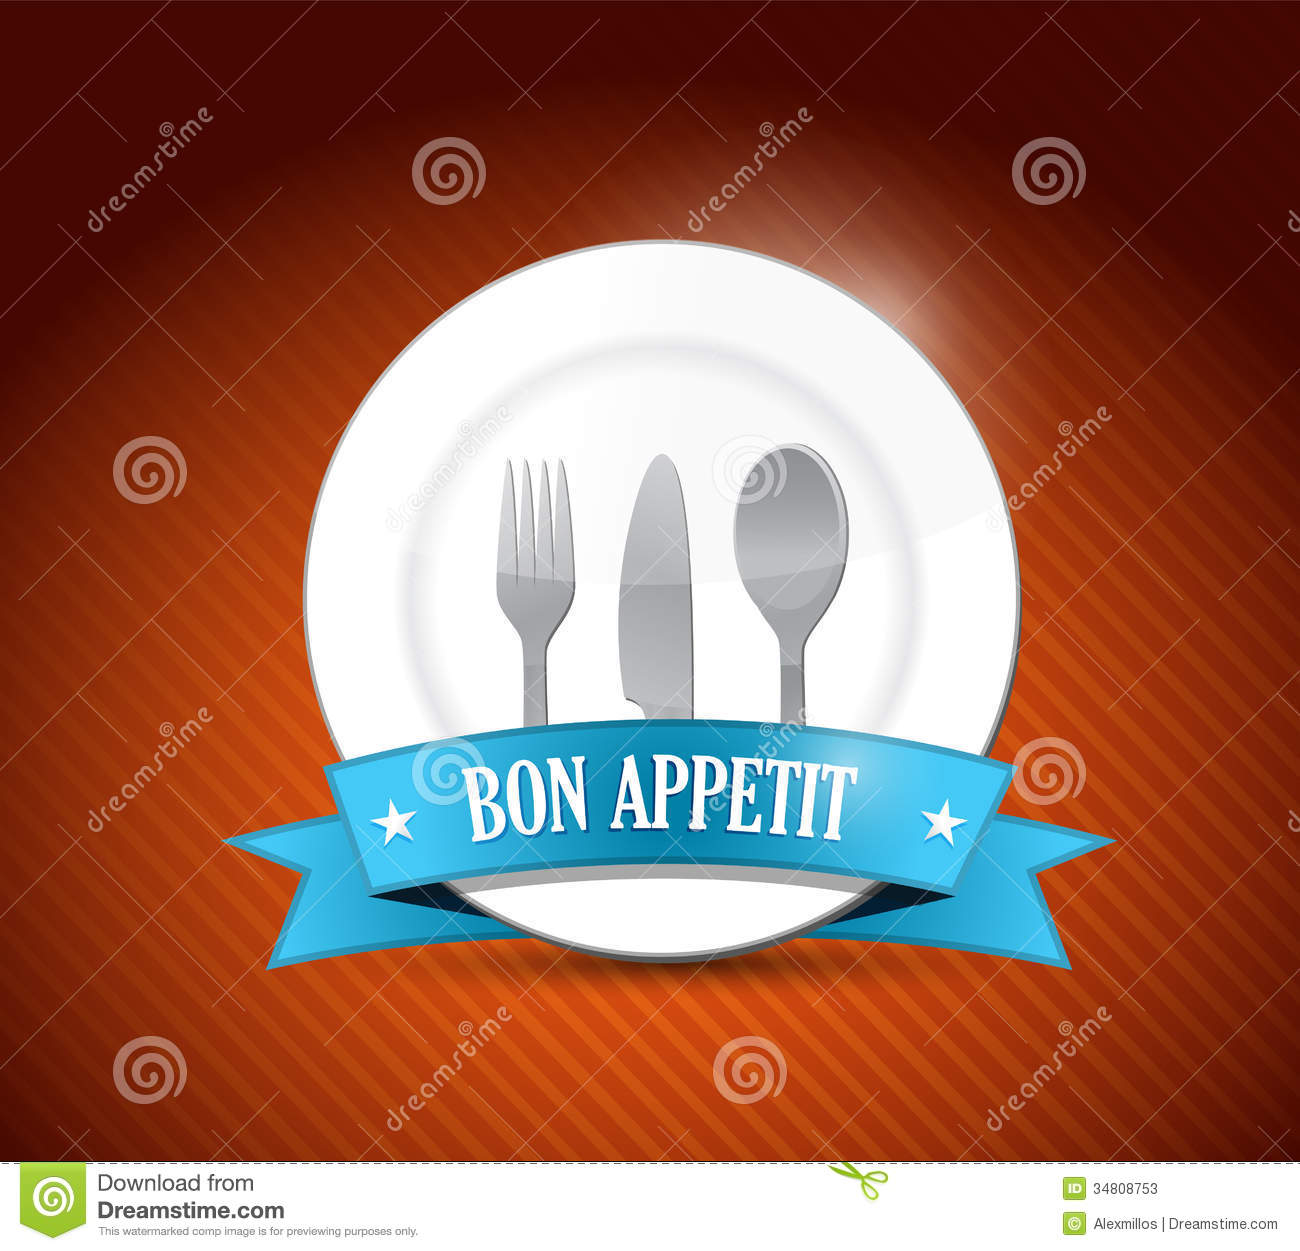 bon appetit restaurant design illustration design stock photos image 34808753. Black Bedroom Furniture Sets. Home Design Ideas